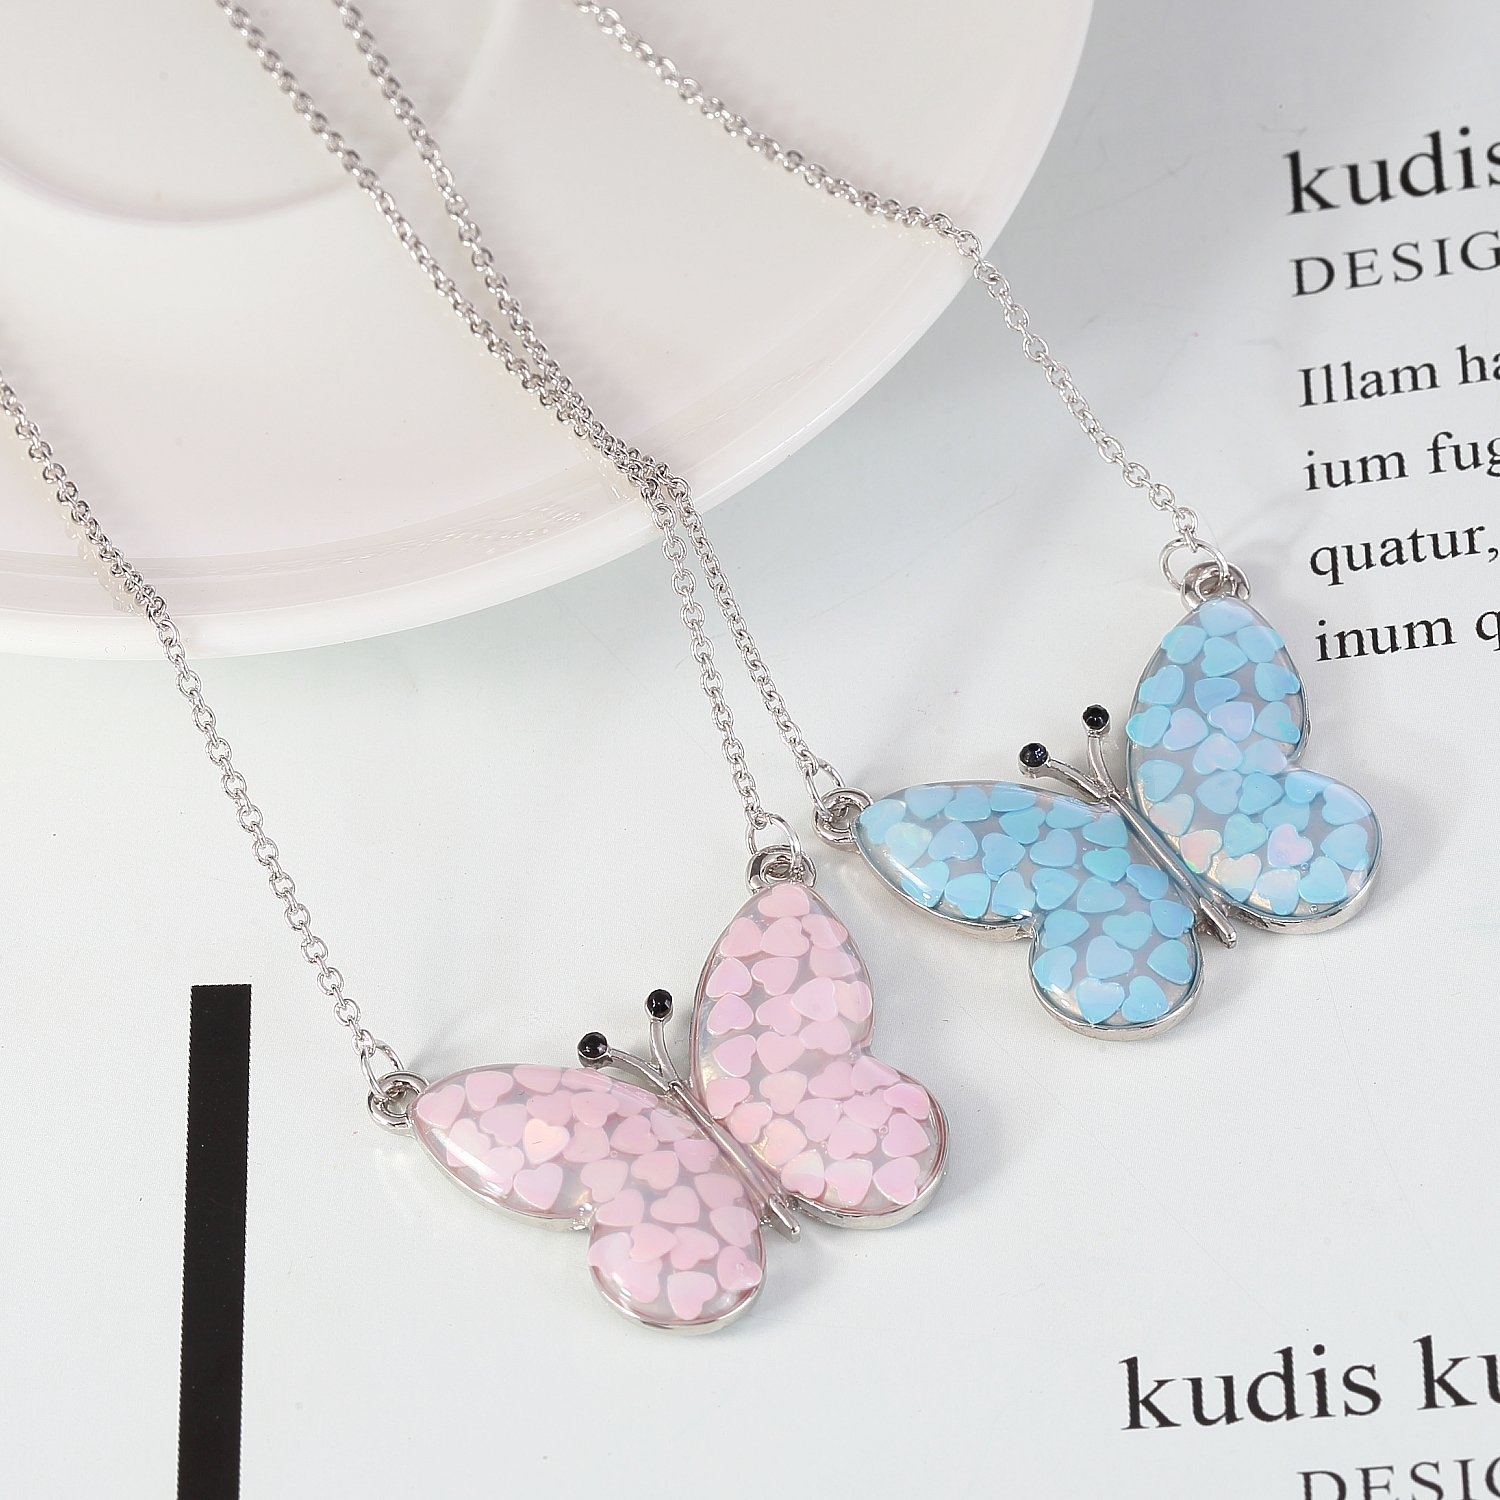 Lemonage Butterfly Necklaces for Girls Kids with Stunning Alloy Pendant Necklace, Children 3+ (Pink) by Lemonage (Image #4)